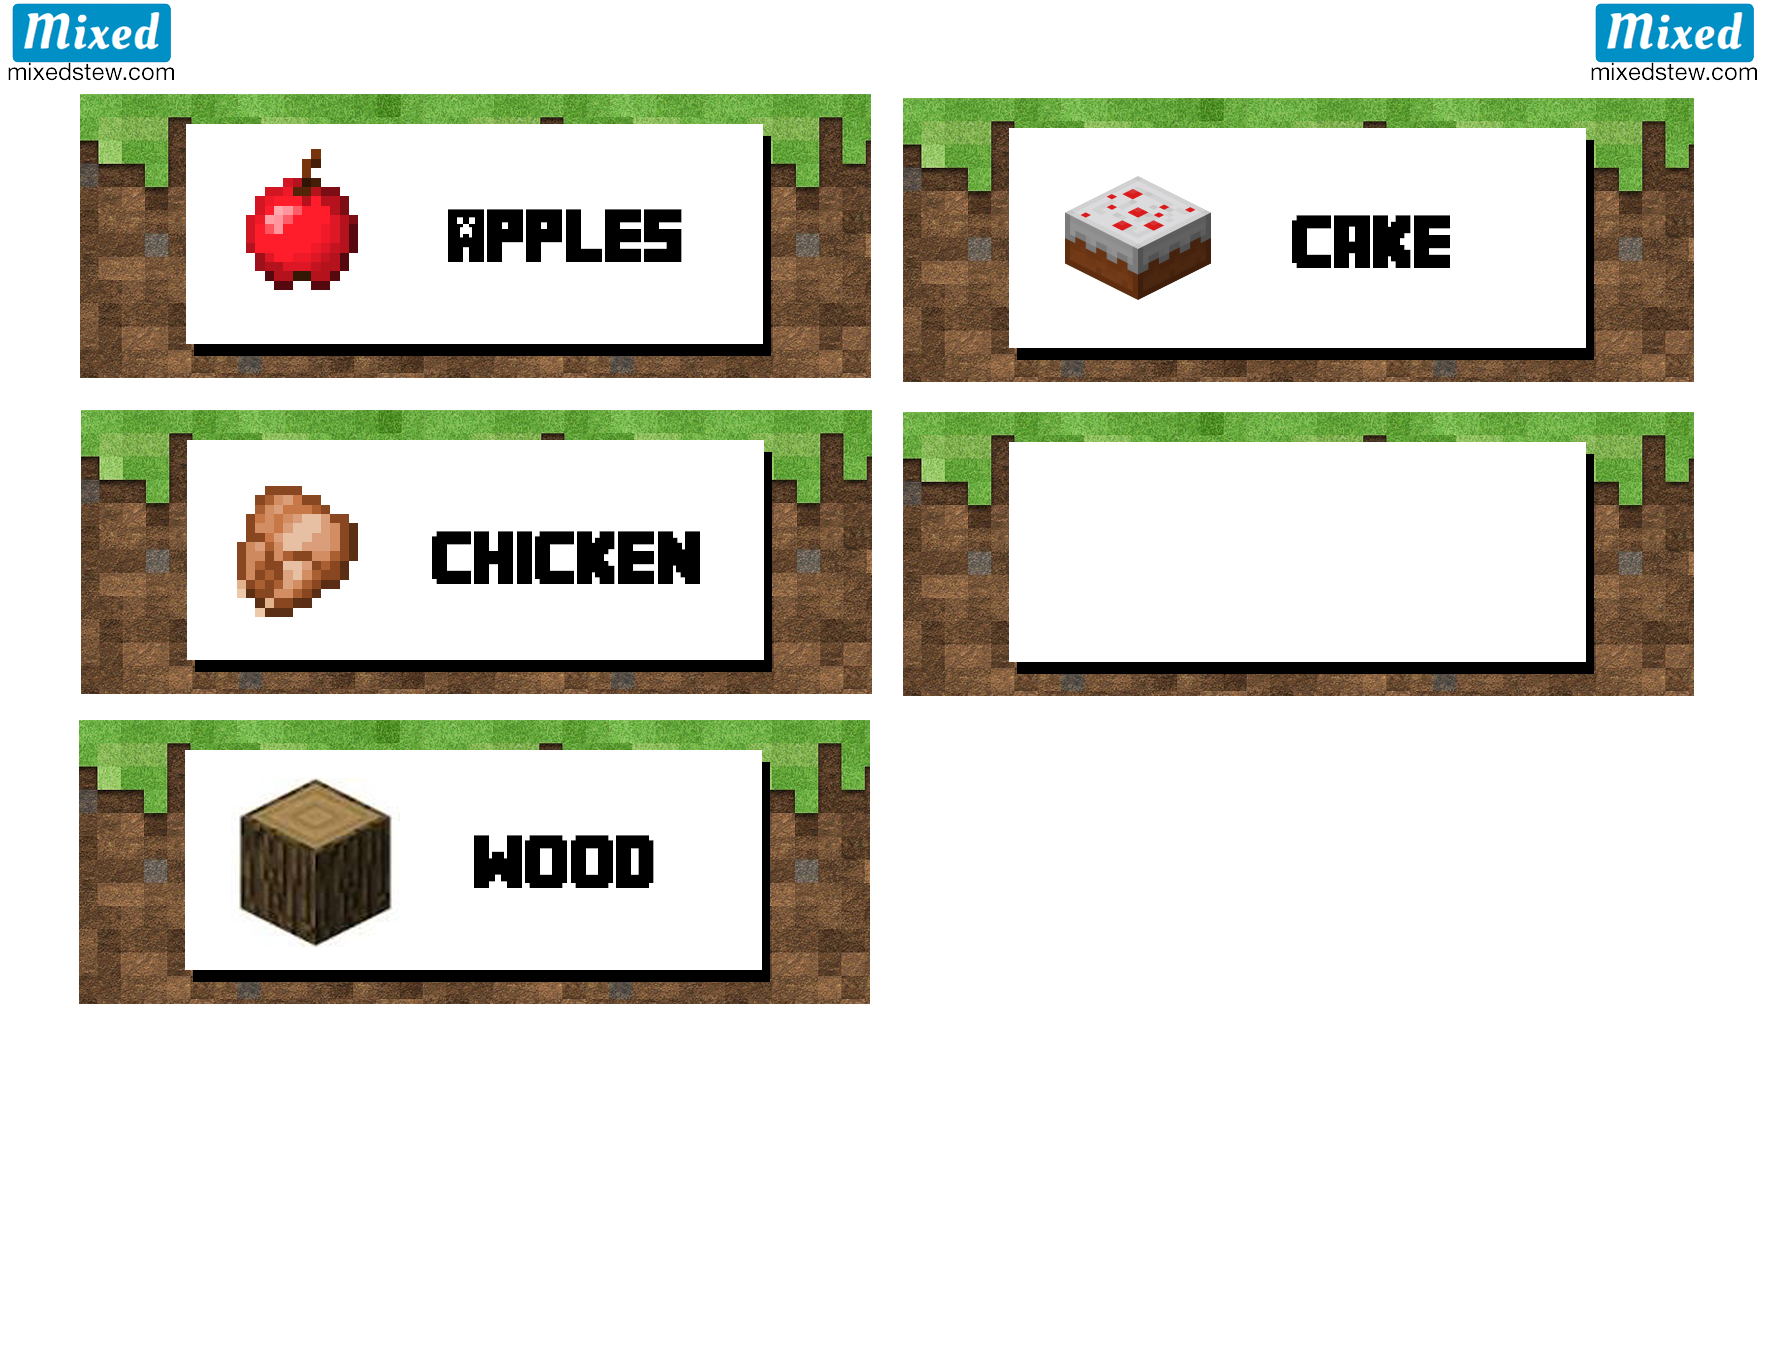 Ultimate Minecraft party printable food labels - Mixedstew.com ...